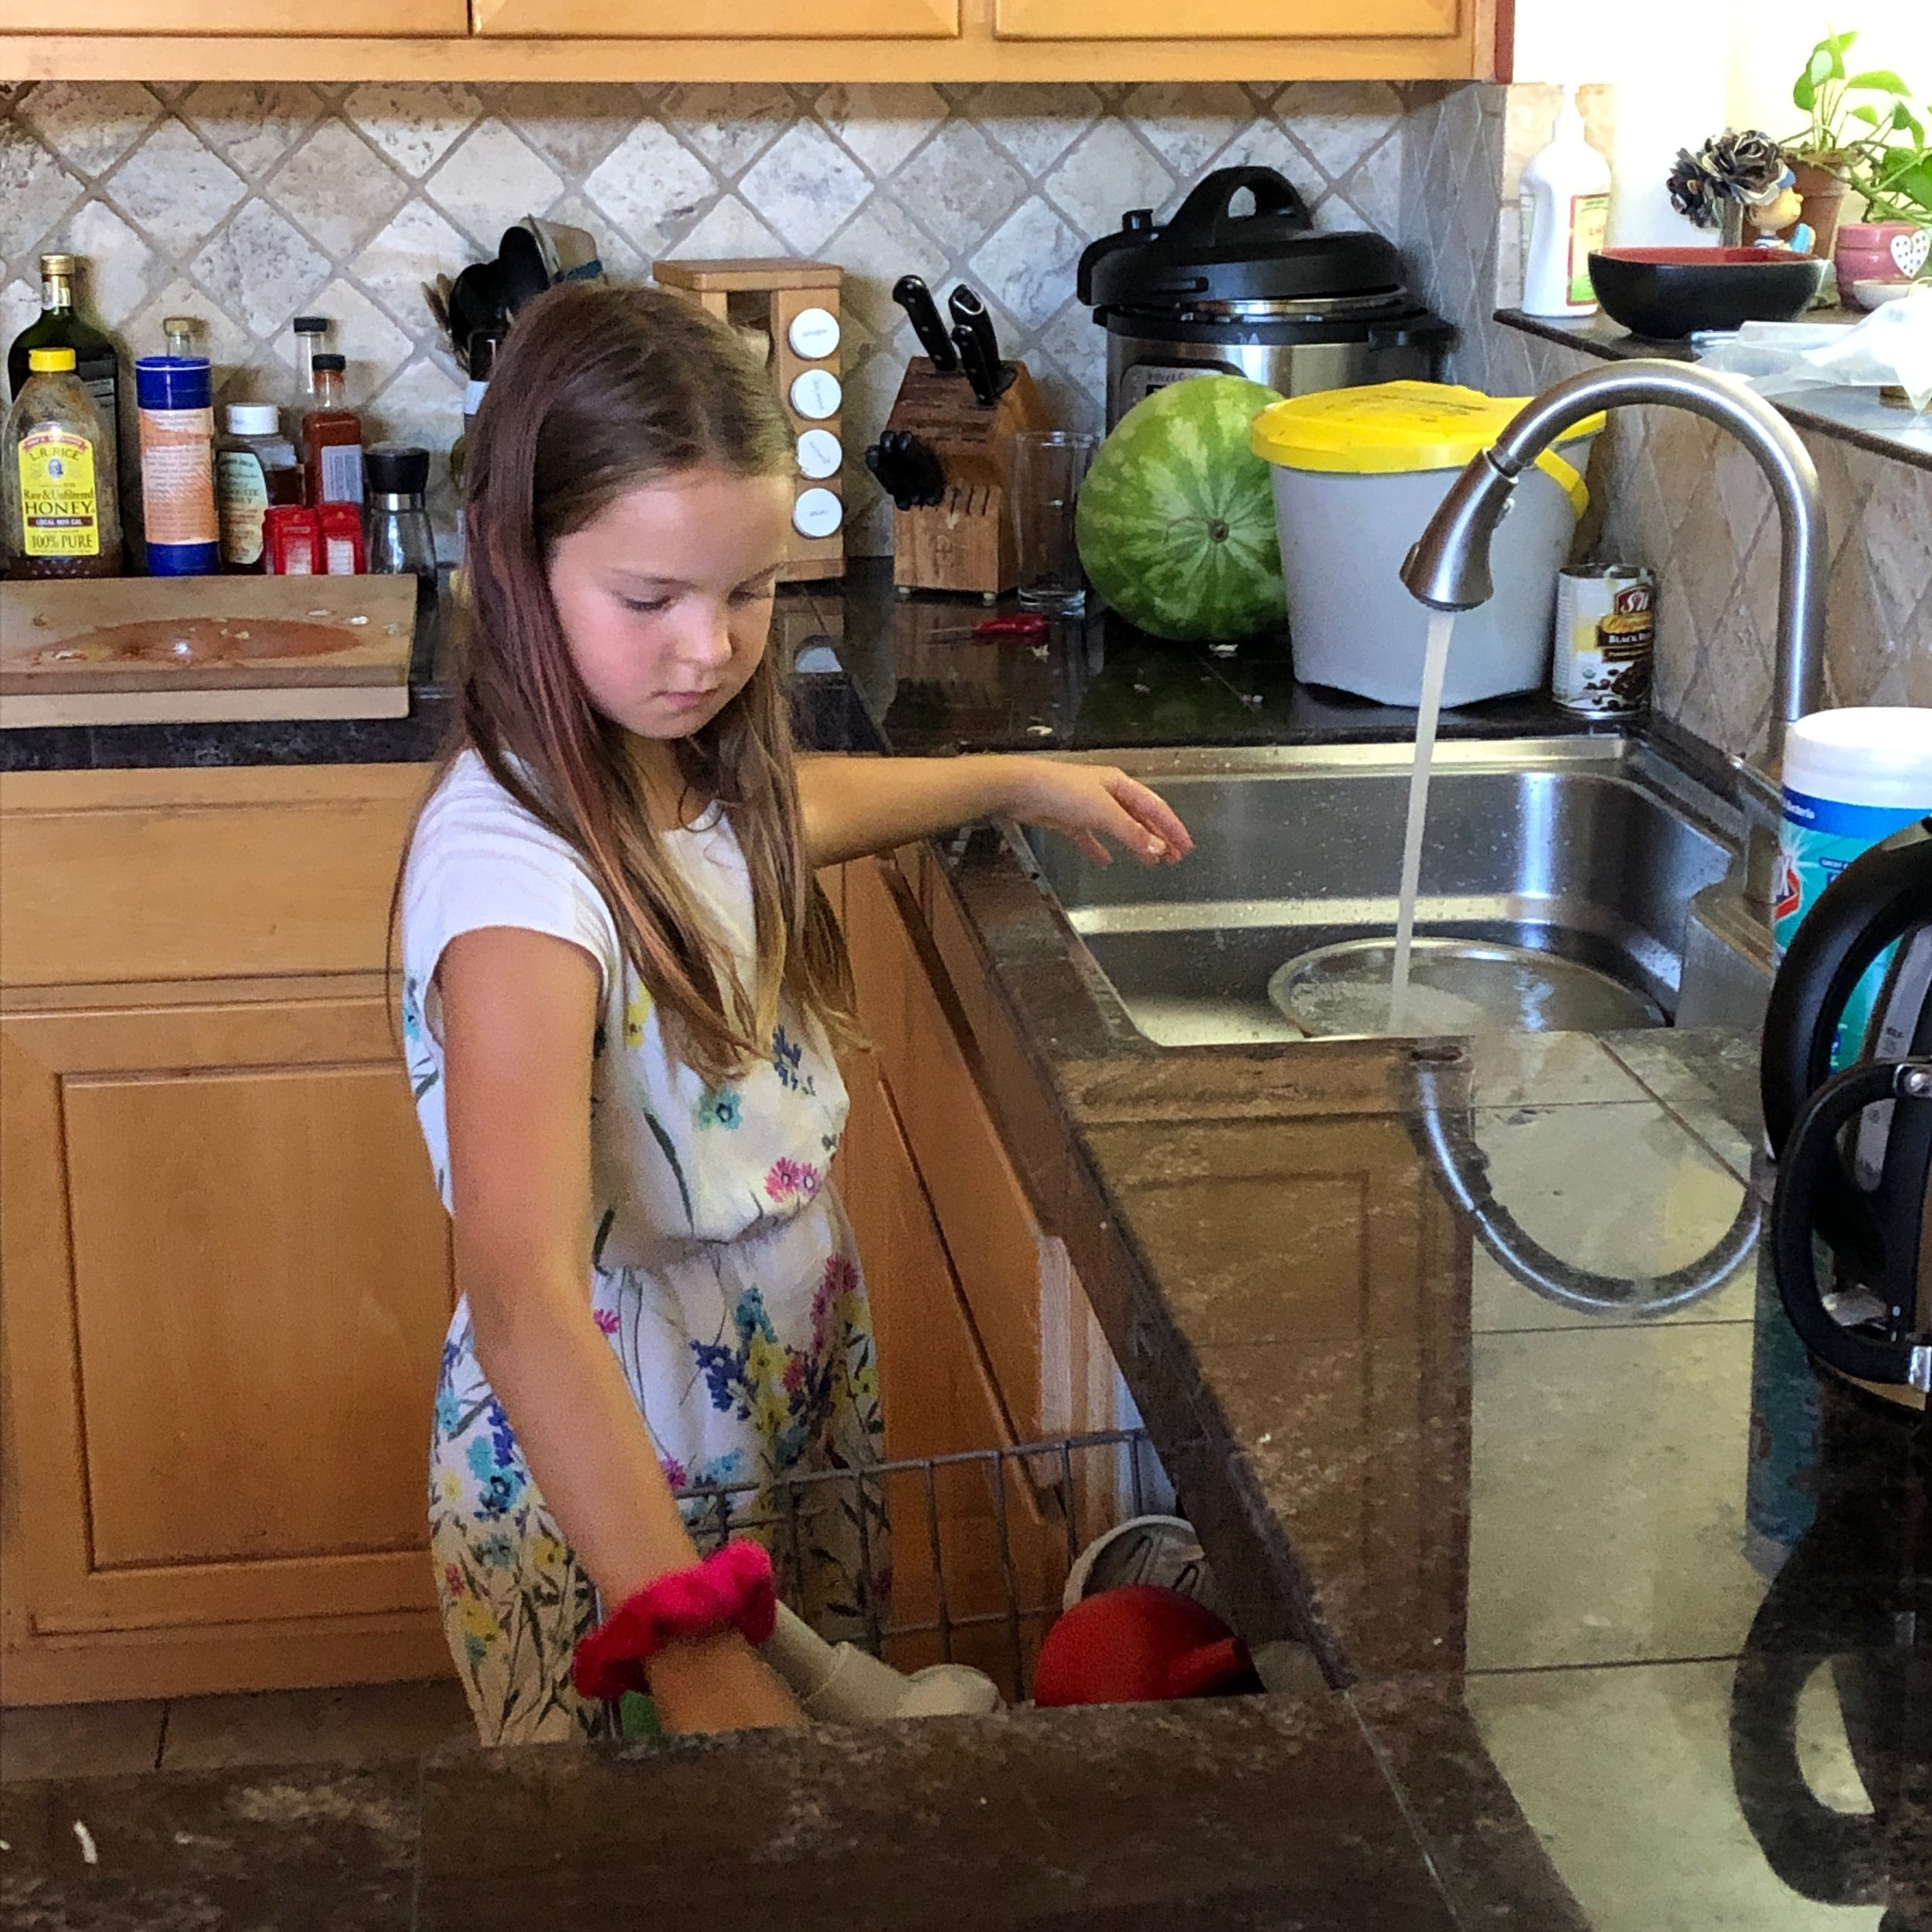 """Little Chef"" cleans up after making ranch dressing from scratch, which included a bike ride with her brother to the grocery store for a missing ingredient."